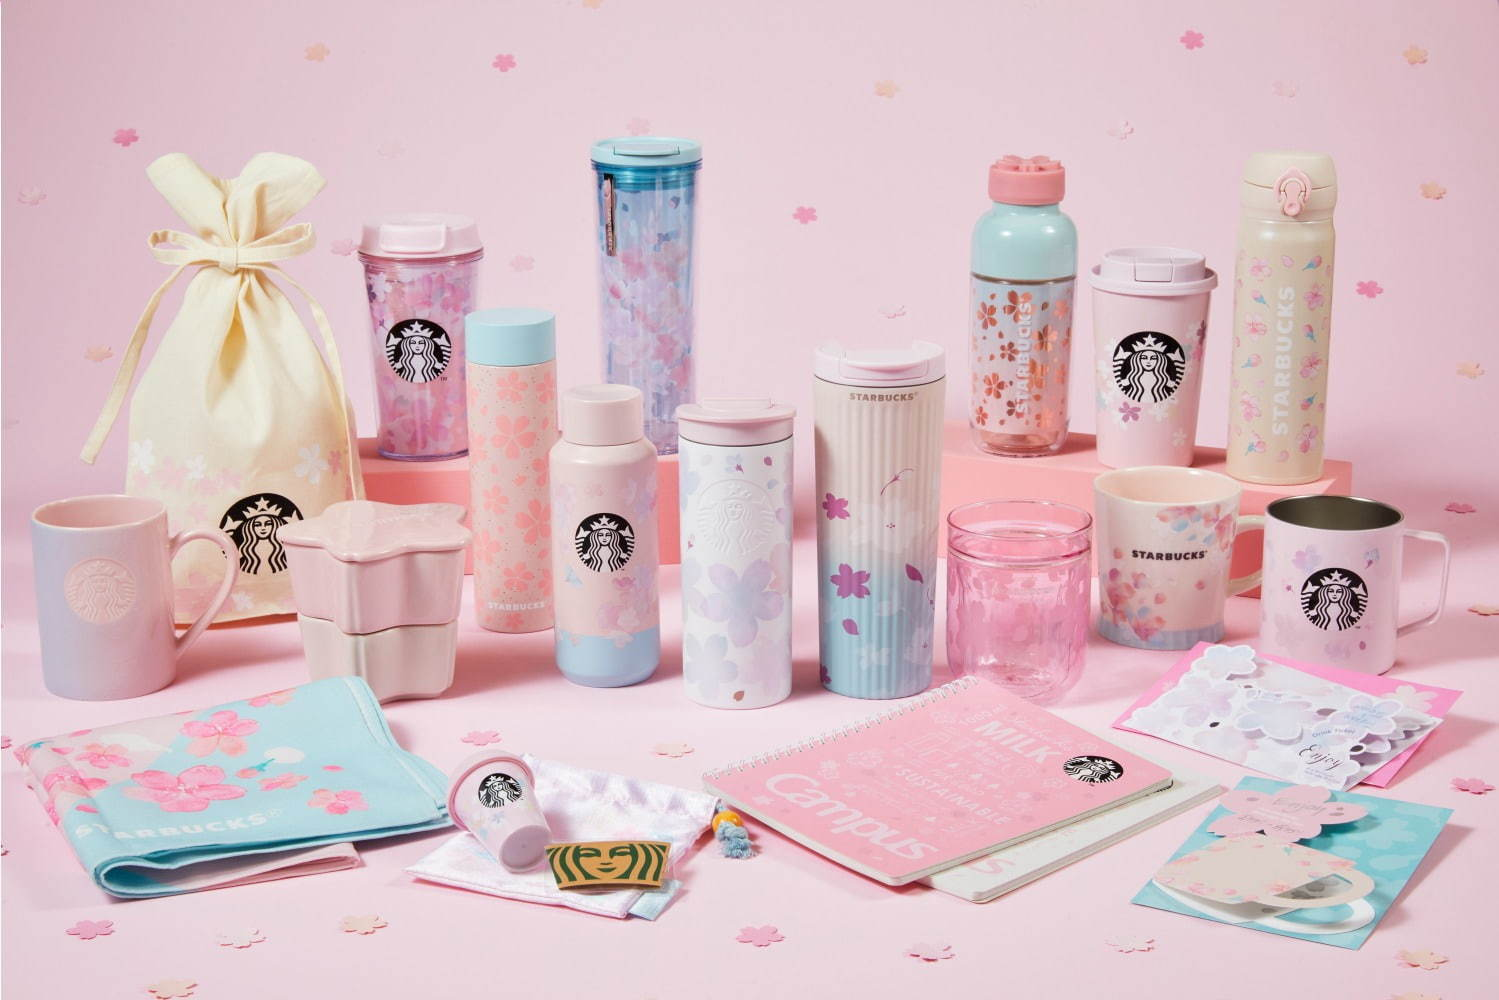 Starbucks Japan Sakura Tumblers and Mugs 2021